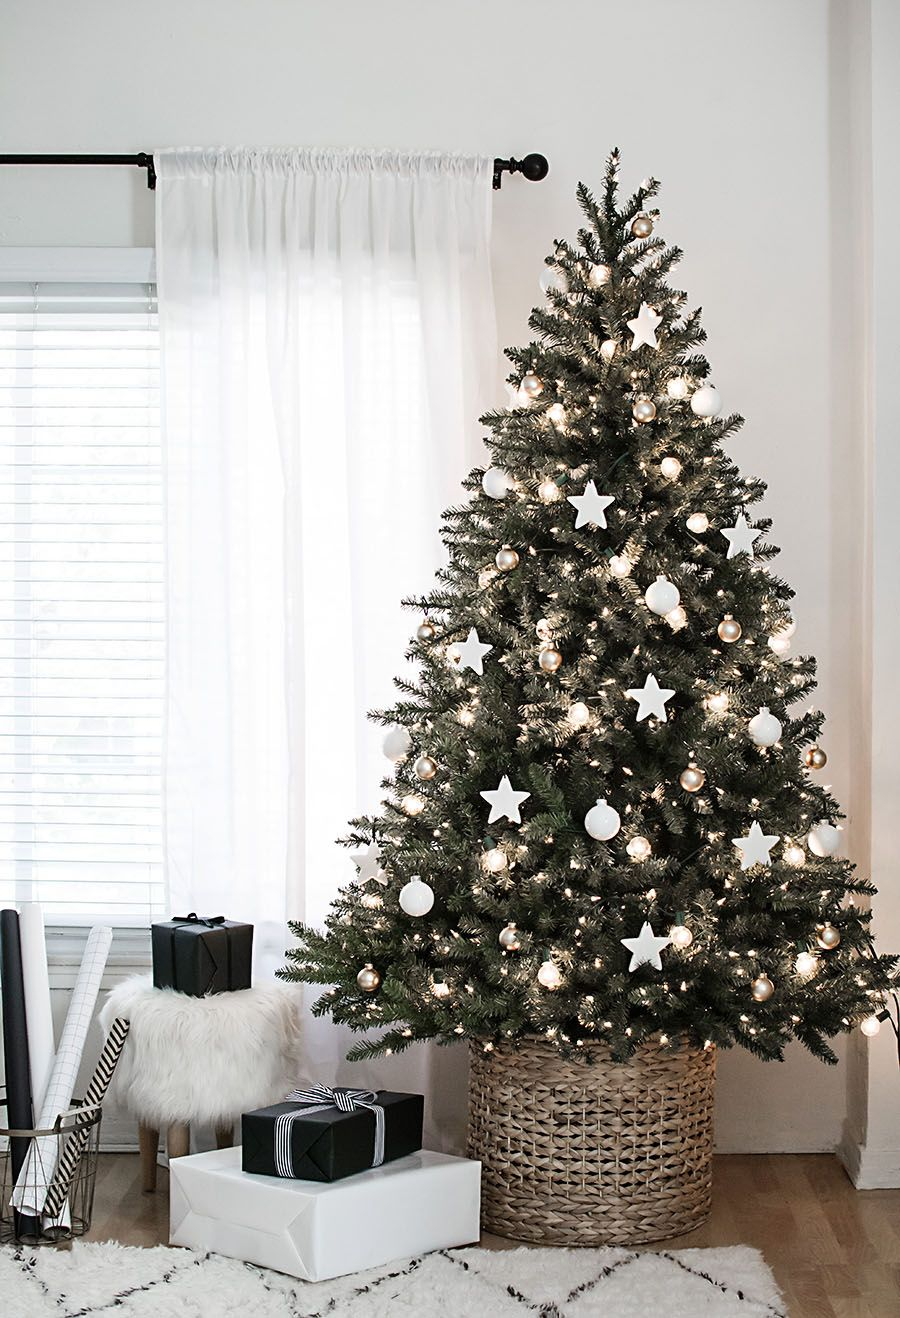 10 Christmas Tree Decorating Ideas | Christmas | Pinterest ...